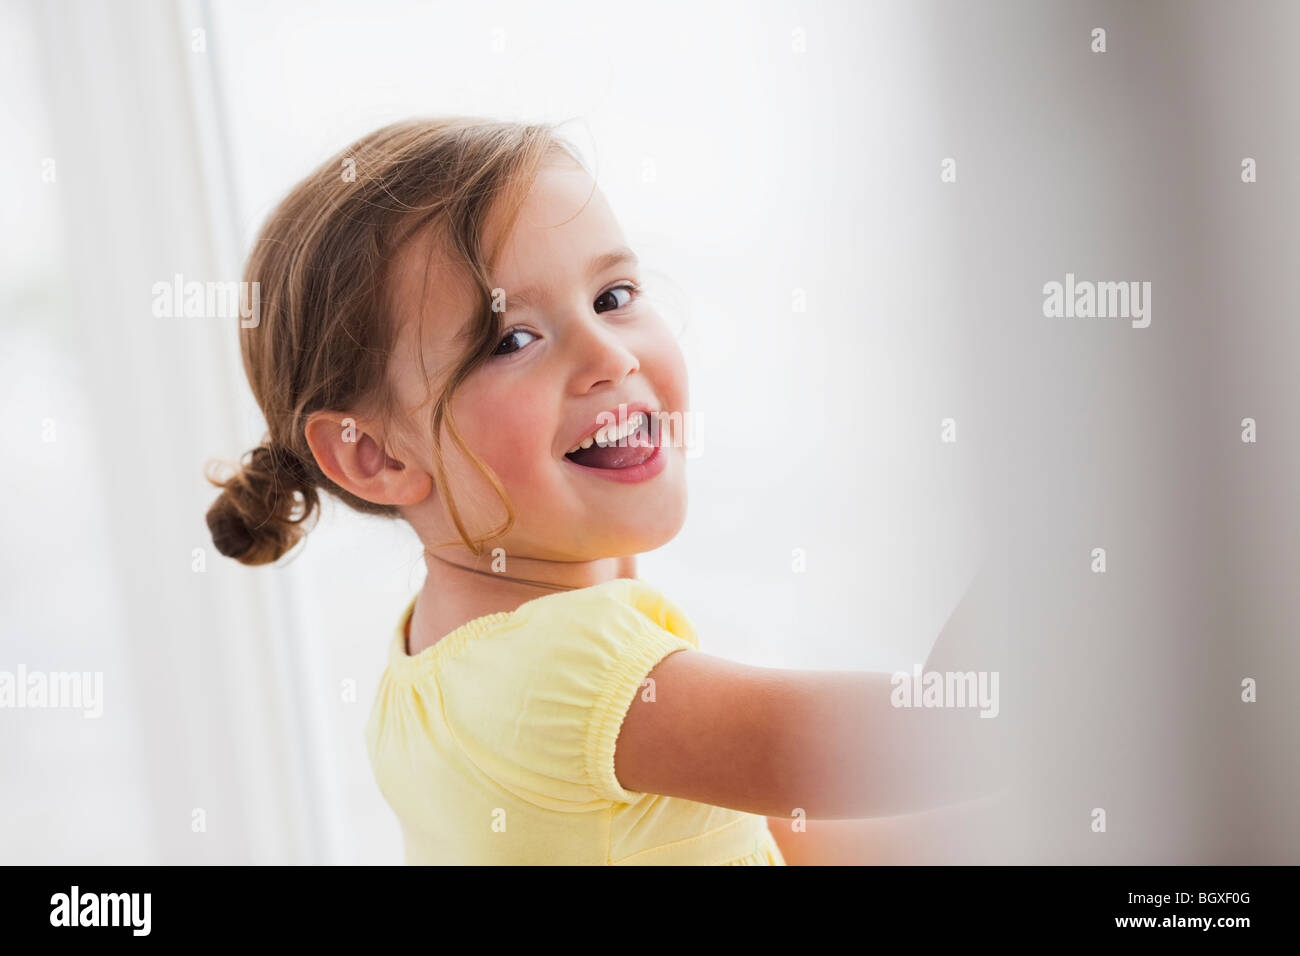 young girl smiling at viewer - Stock Image